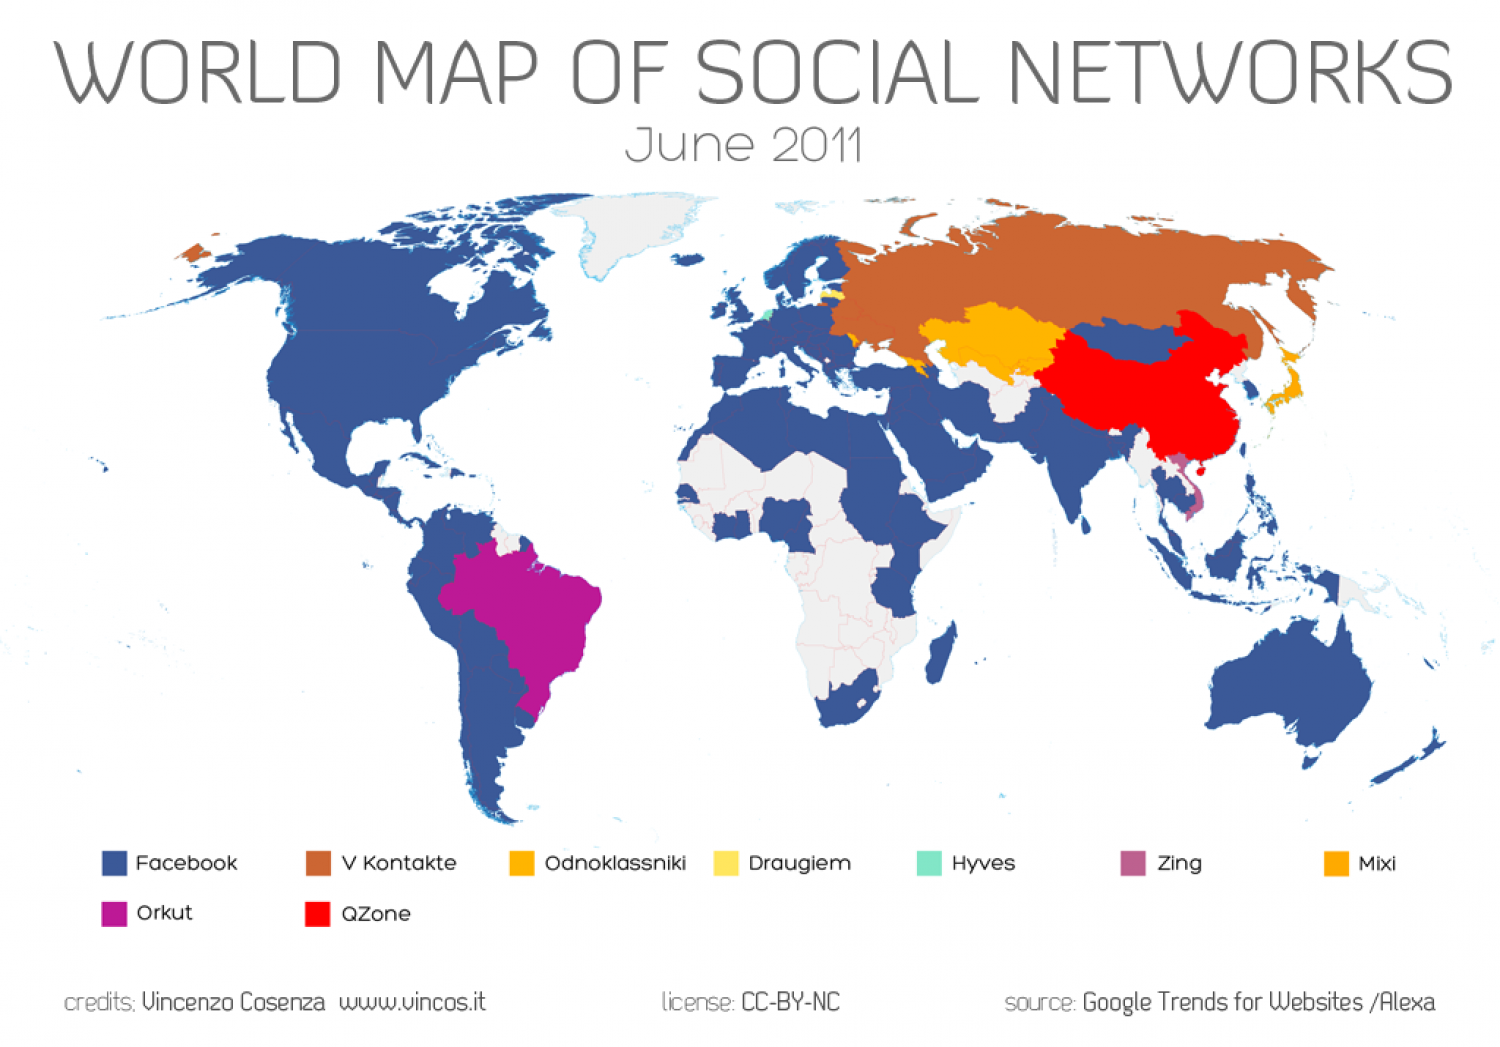 World Map of Social Networks - June 2011 Infographic